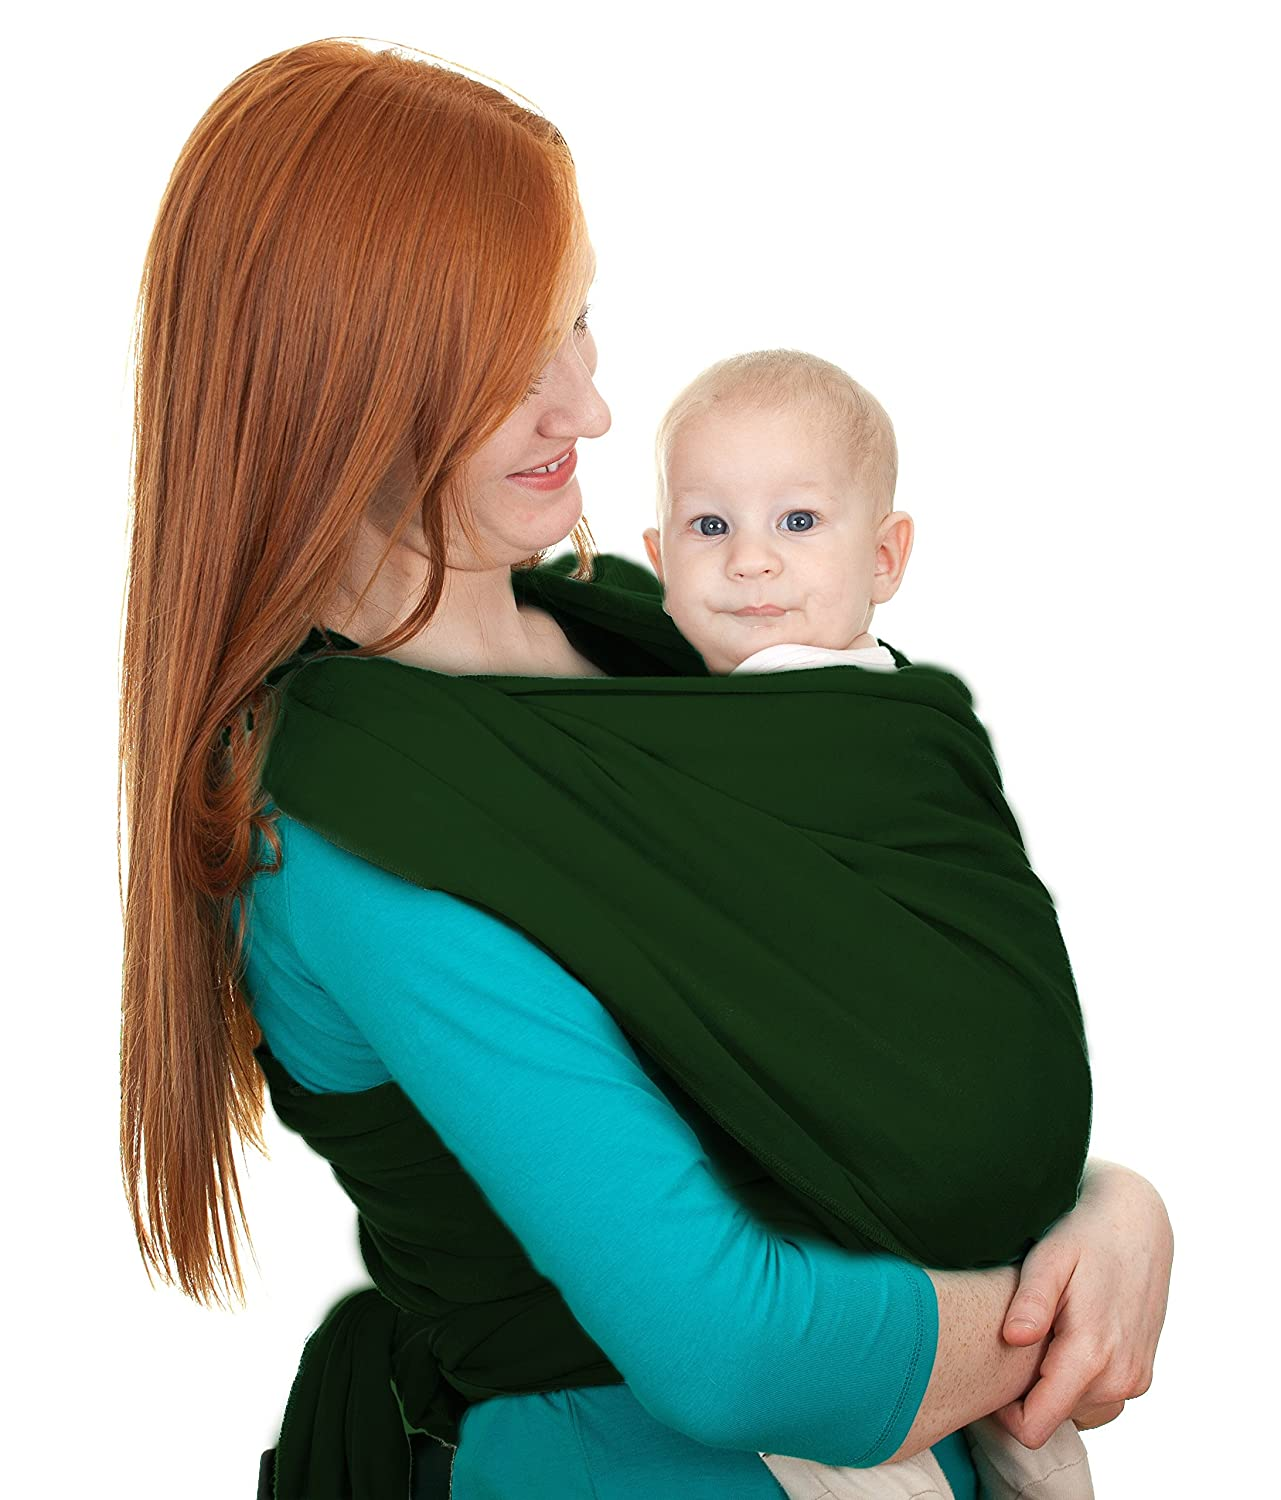 Baby Wrap Best Fit For Plus Size Parents Baby Wrap Gentle Cotton Baby Carrier Best For Infant